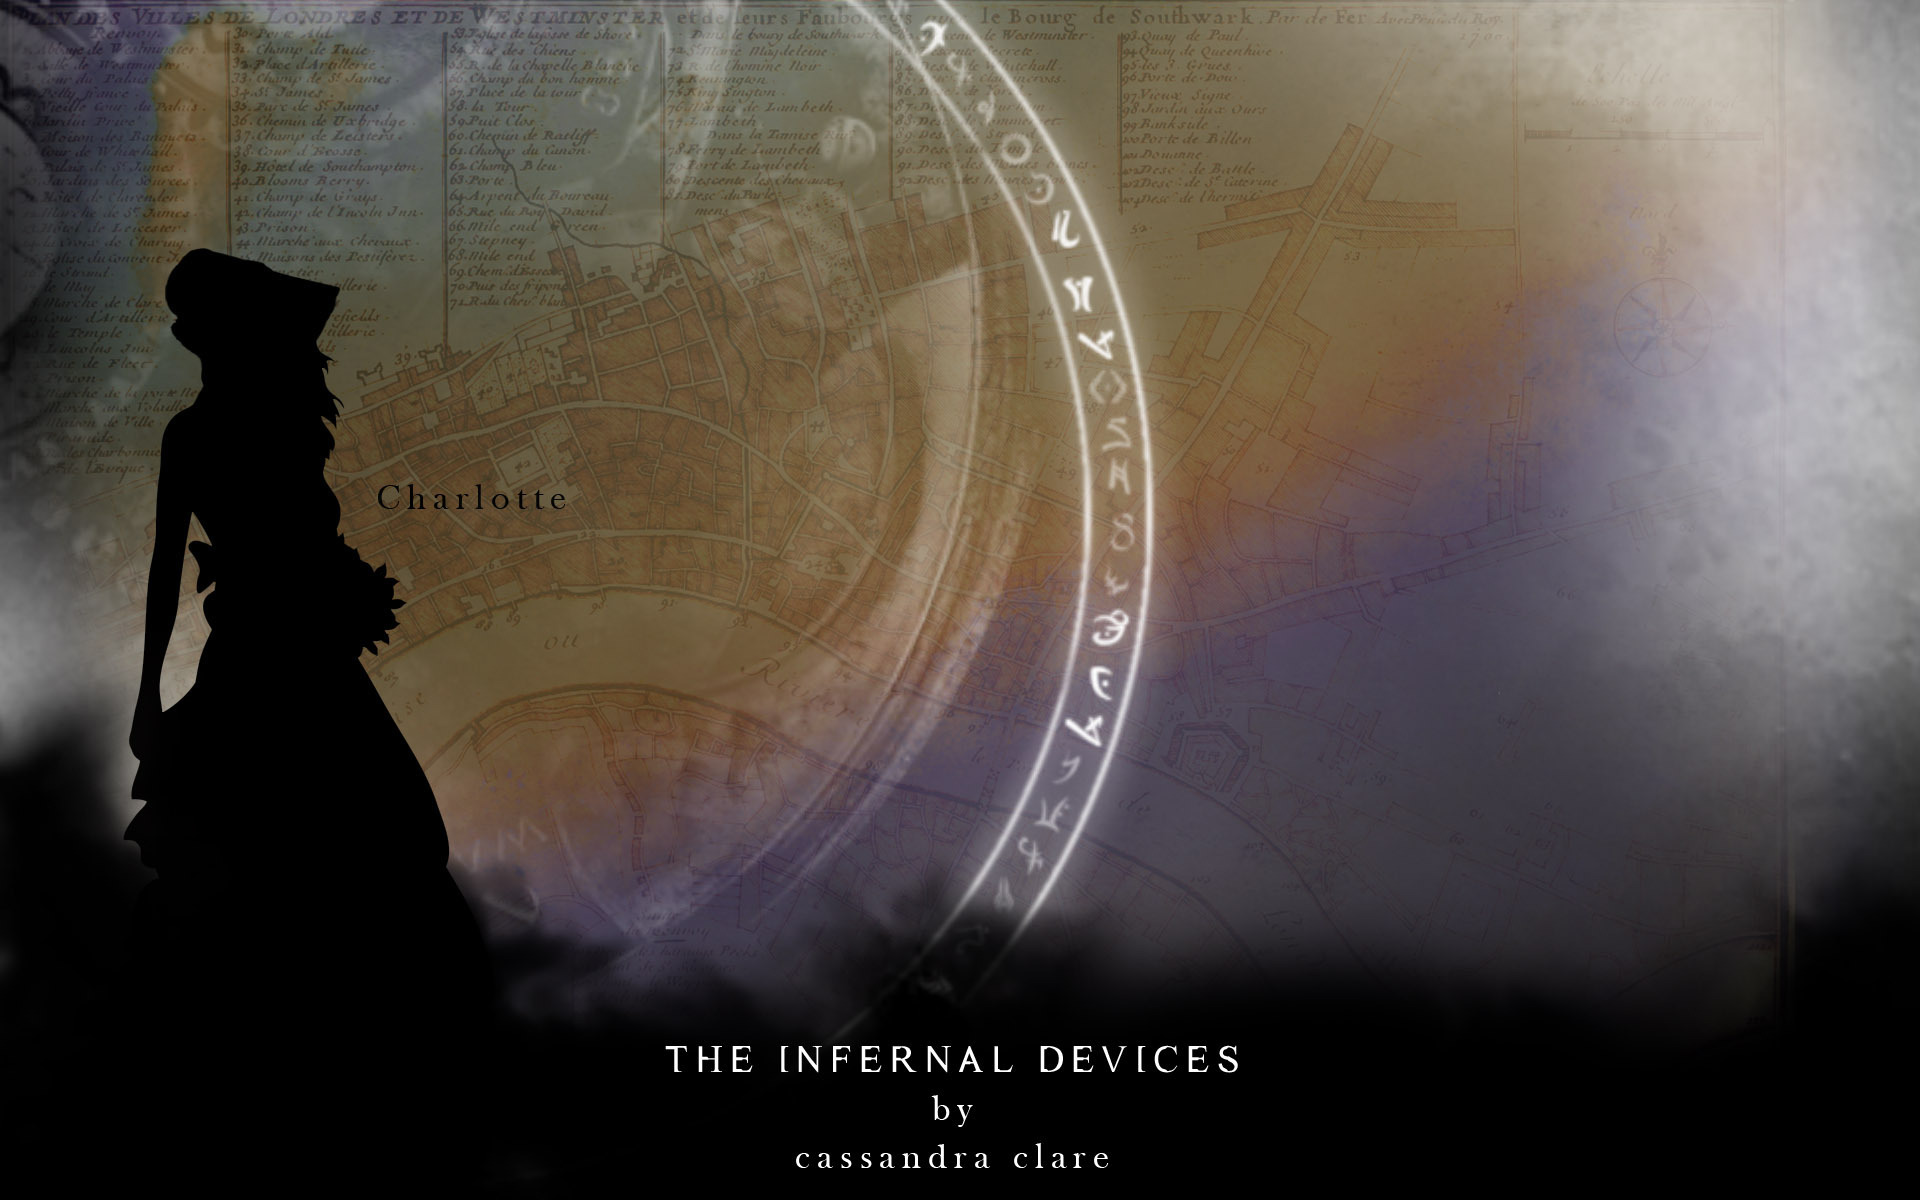 The Infernal Devices Quotes Wallpaper Infernal Devices Quotes Wallpaper Quotesgram